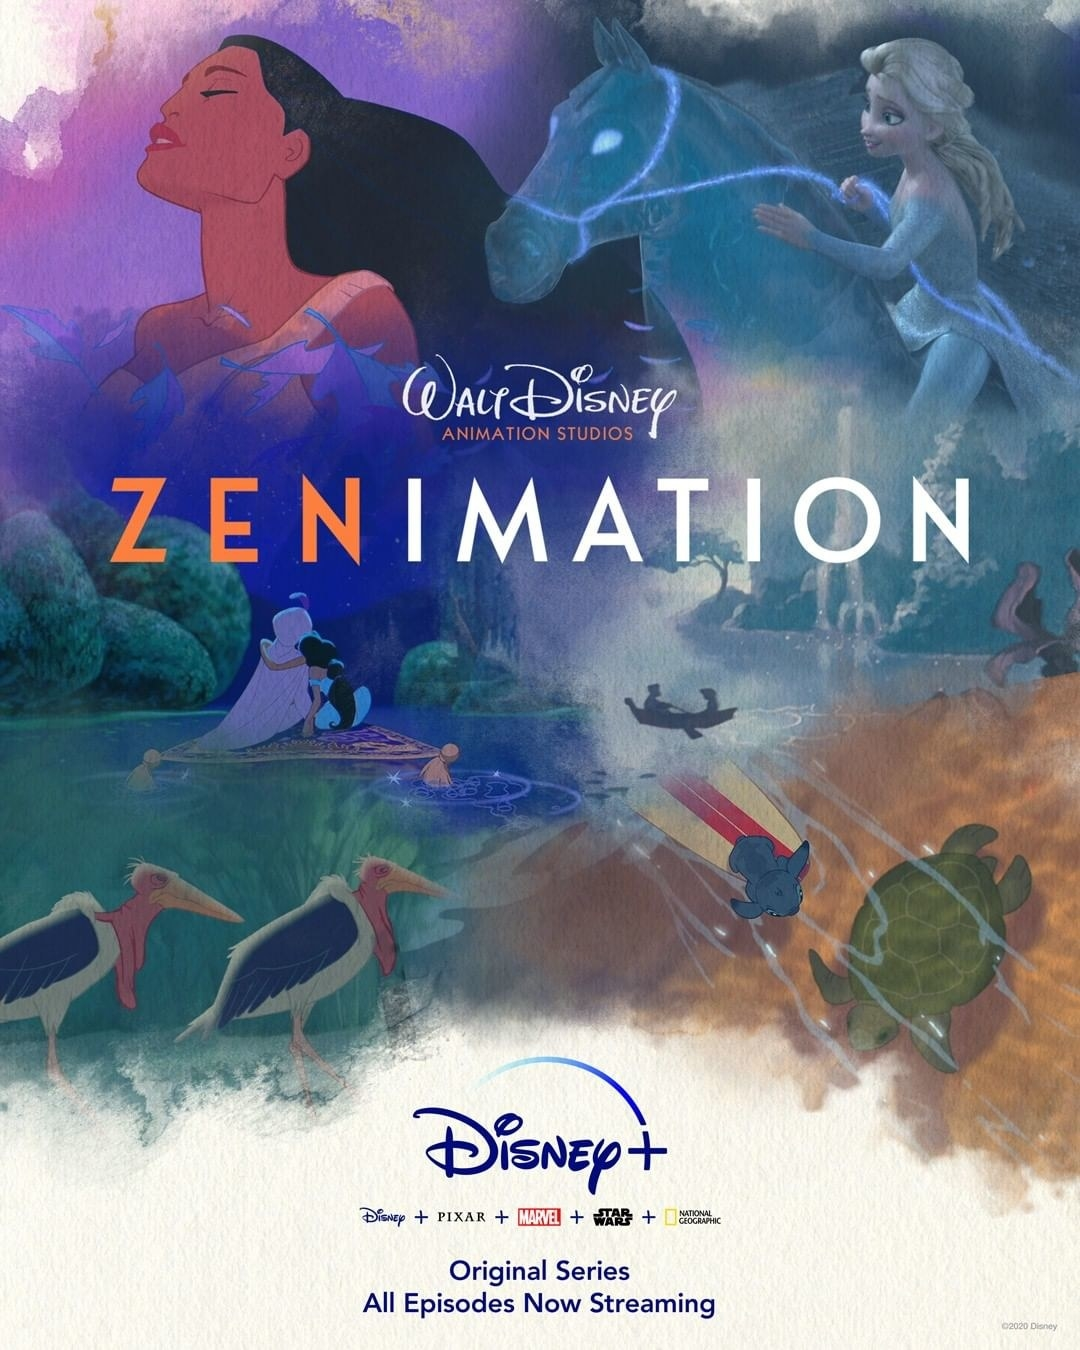 various soothing scenes from disney films making up the zenimation poster